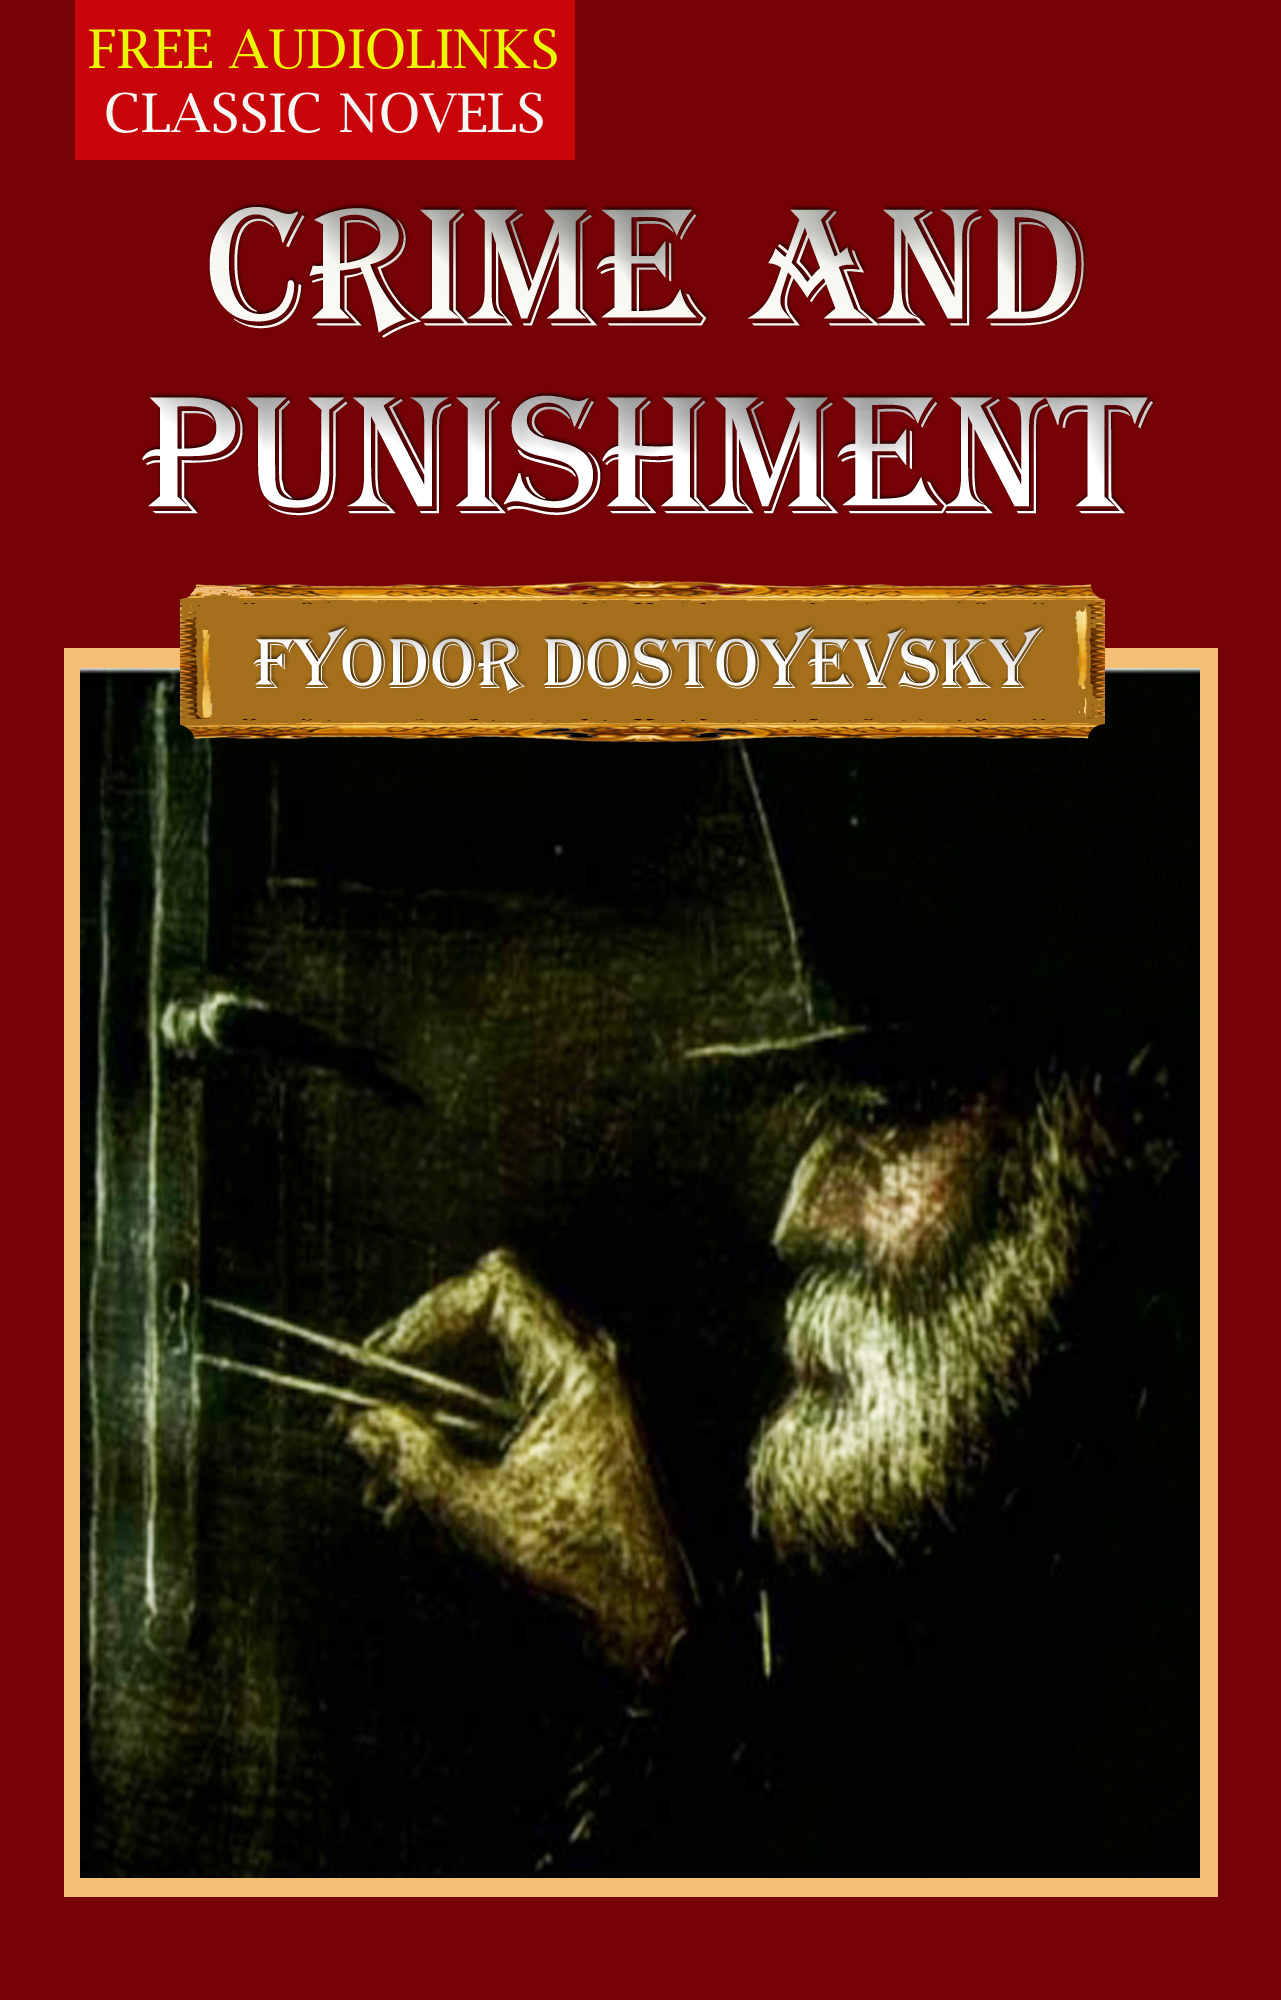 the historical context of crime and punishment by fyodor dostoevsky essay 20-10-2013 posts about crime and punishment written by aisjenglishib 31-7-2017 oliver burkeman has a long-read piece in the crime and punishment dostoevsky essay guardian about a literary analysis of grendel in the epic poem beowulf whether or not life is getting better or worse.